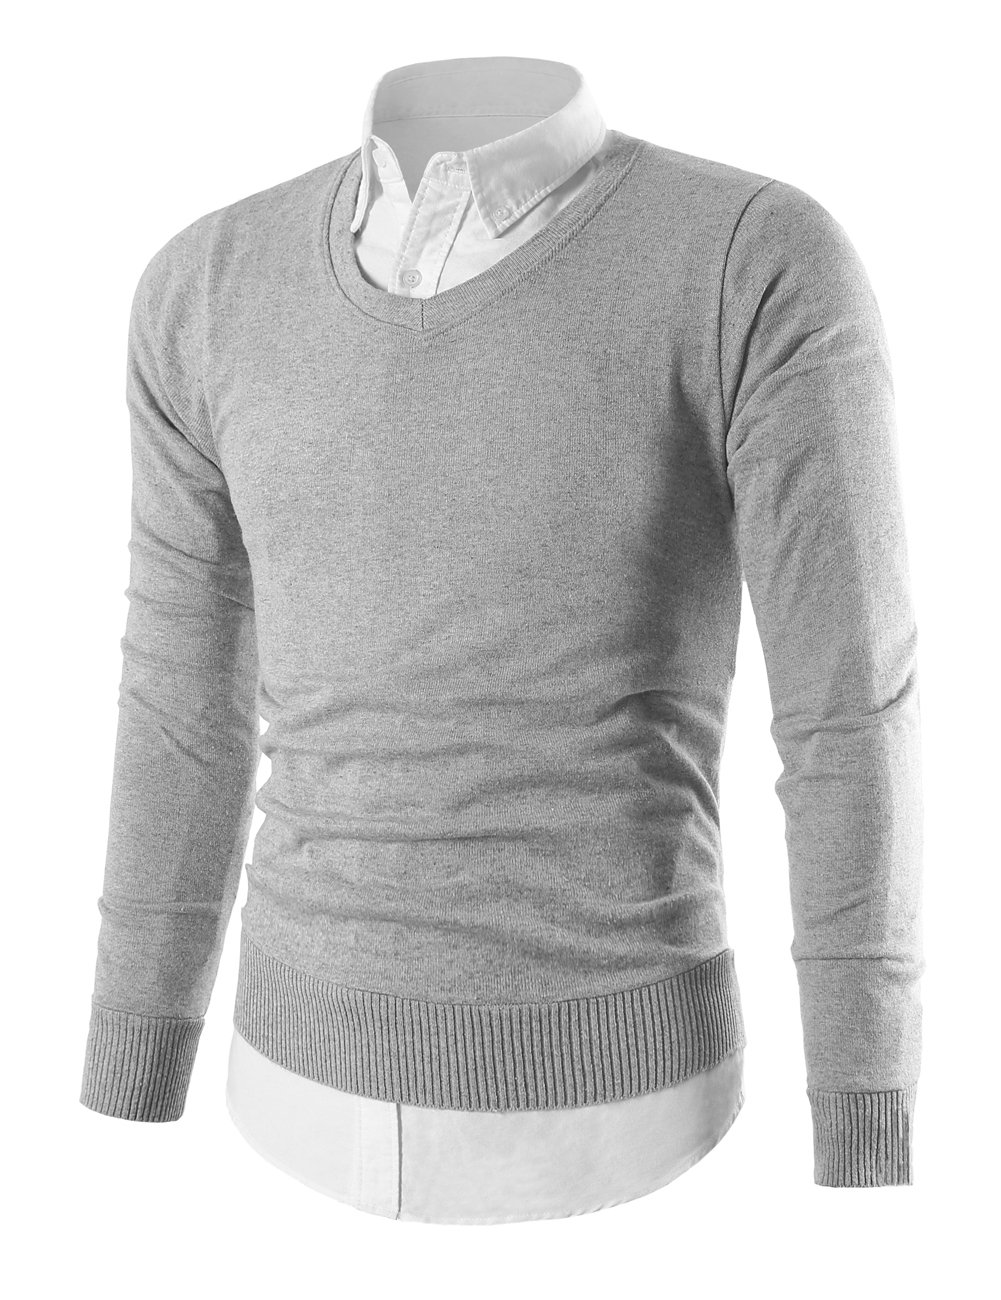 MIEDEON Mens Slim Comfortably Knitted Long Sleeve V-Neck Sweaters